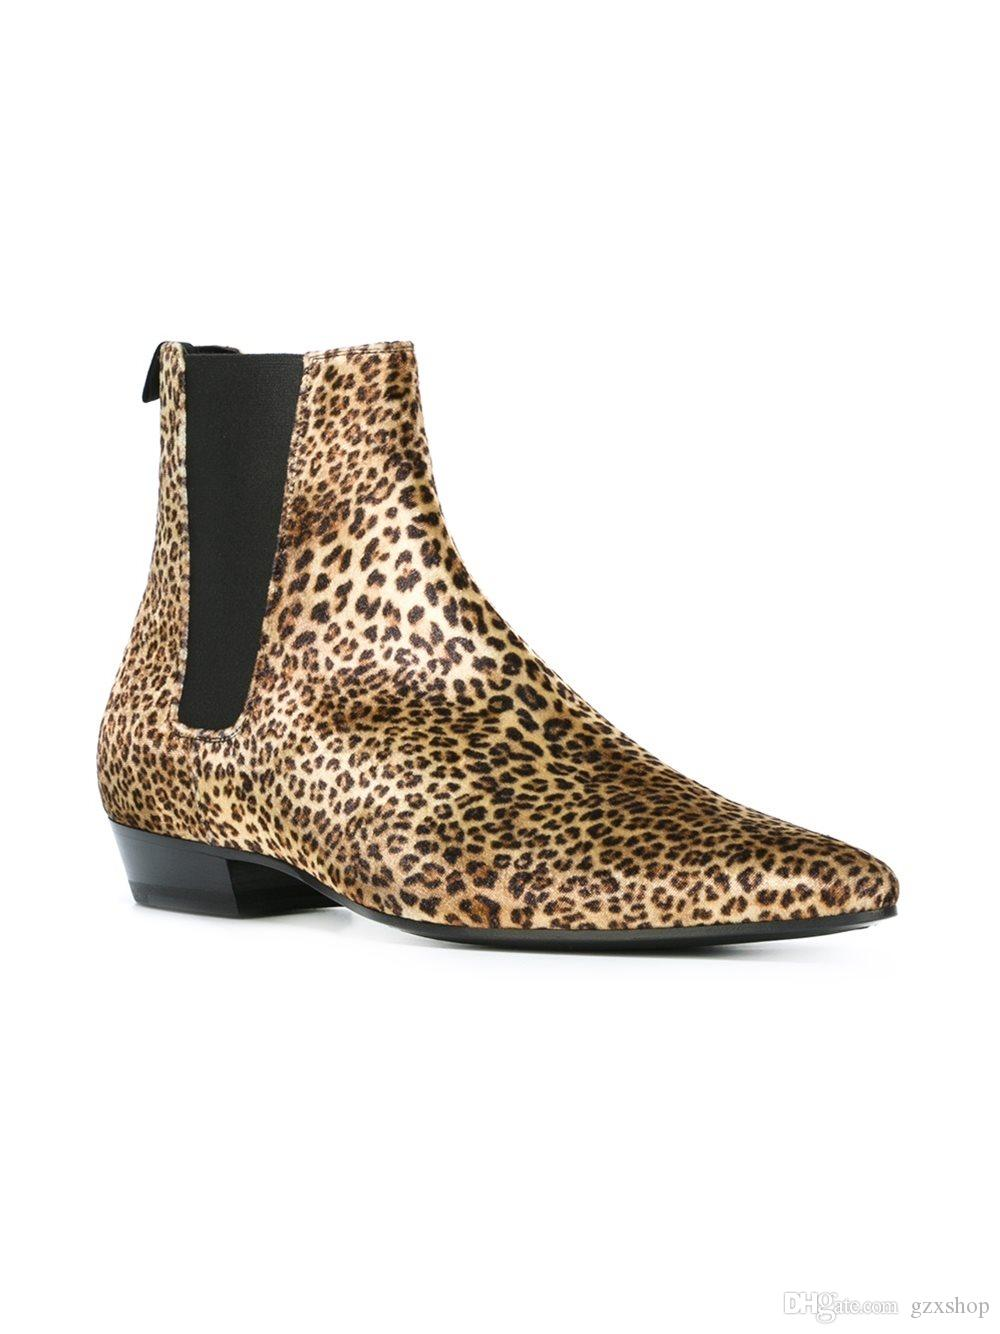 1a736cde1a0c Leopard Print Leather Boots SexeMara New Arrival European Fashion ...